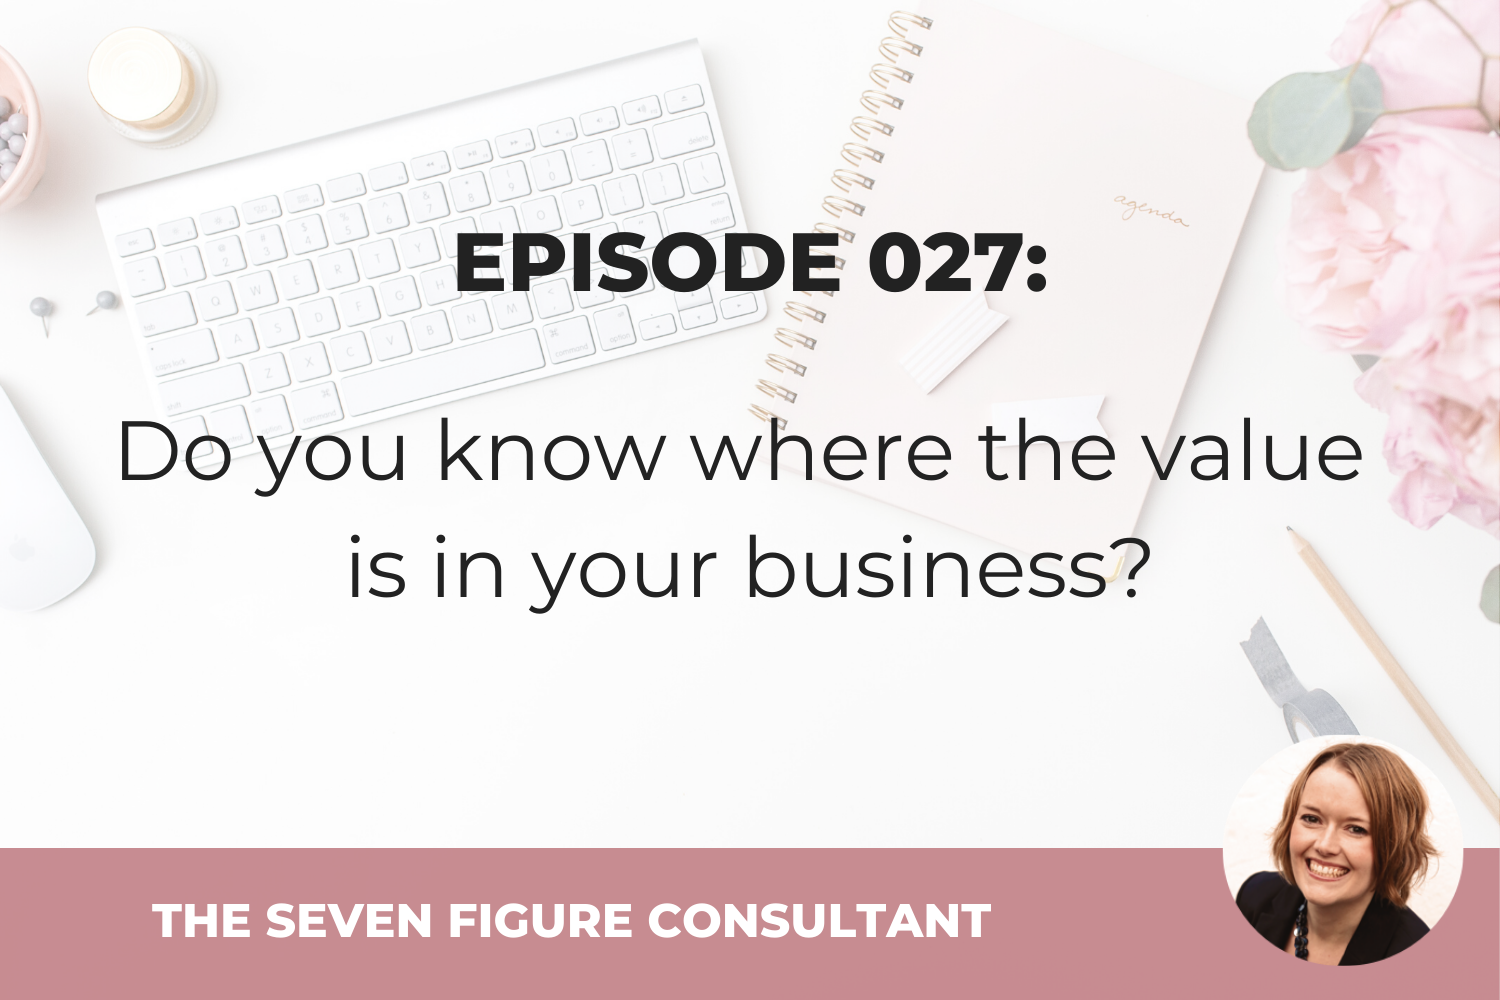 Episode 027: Do you know where the value is in your business?